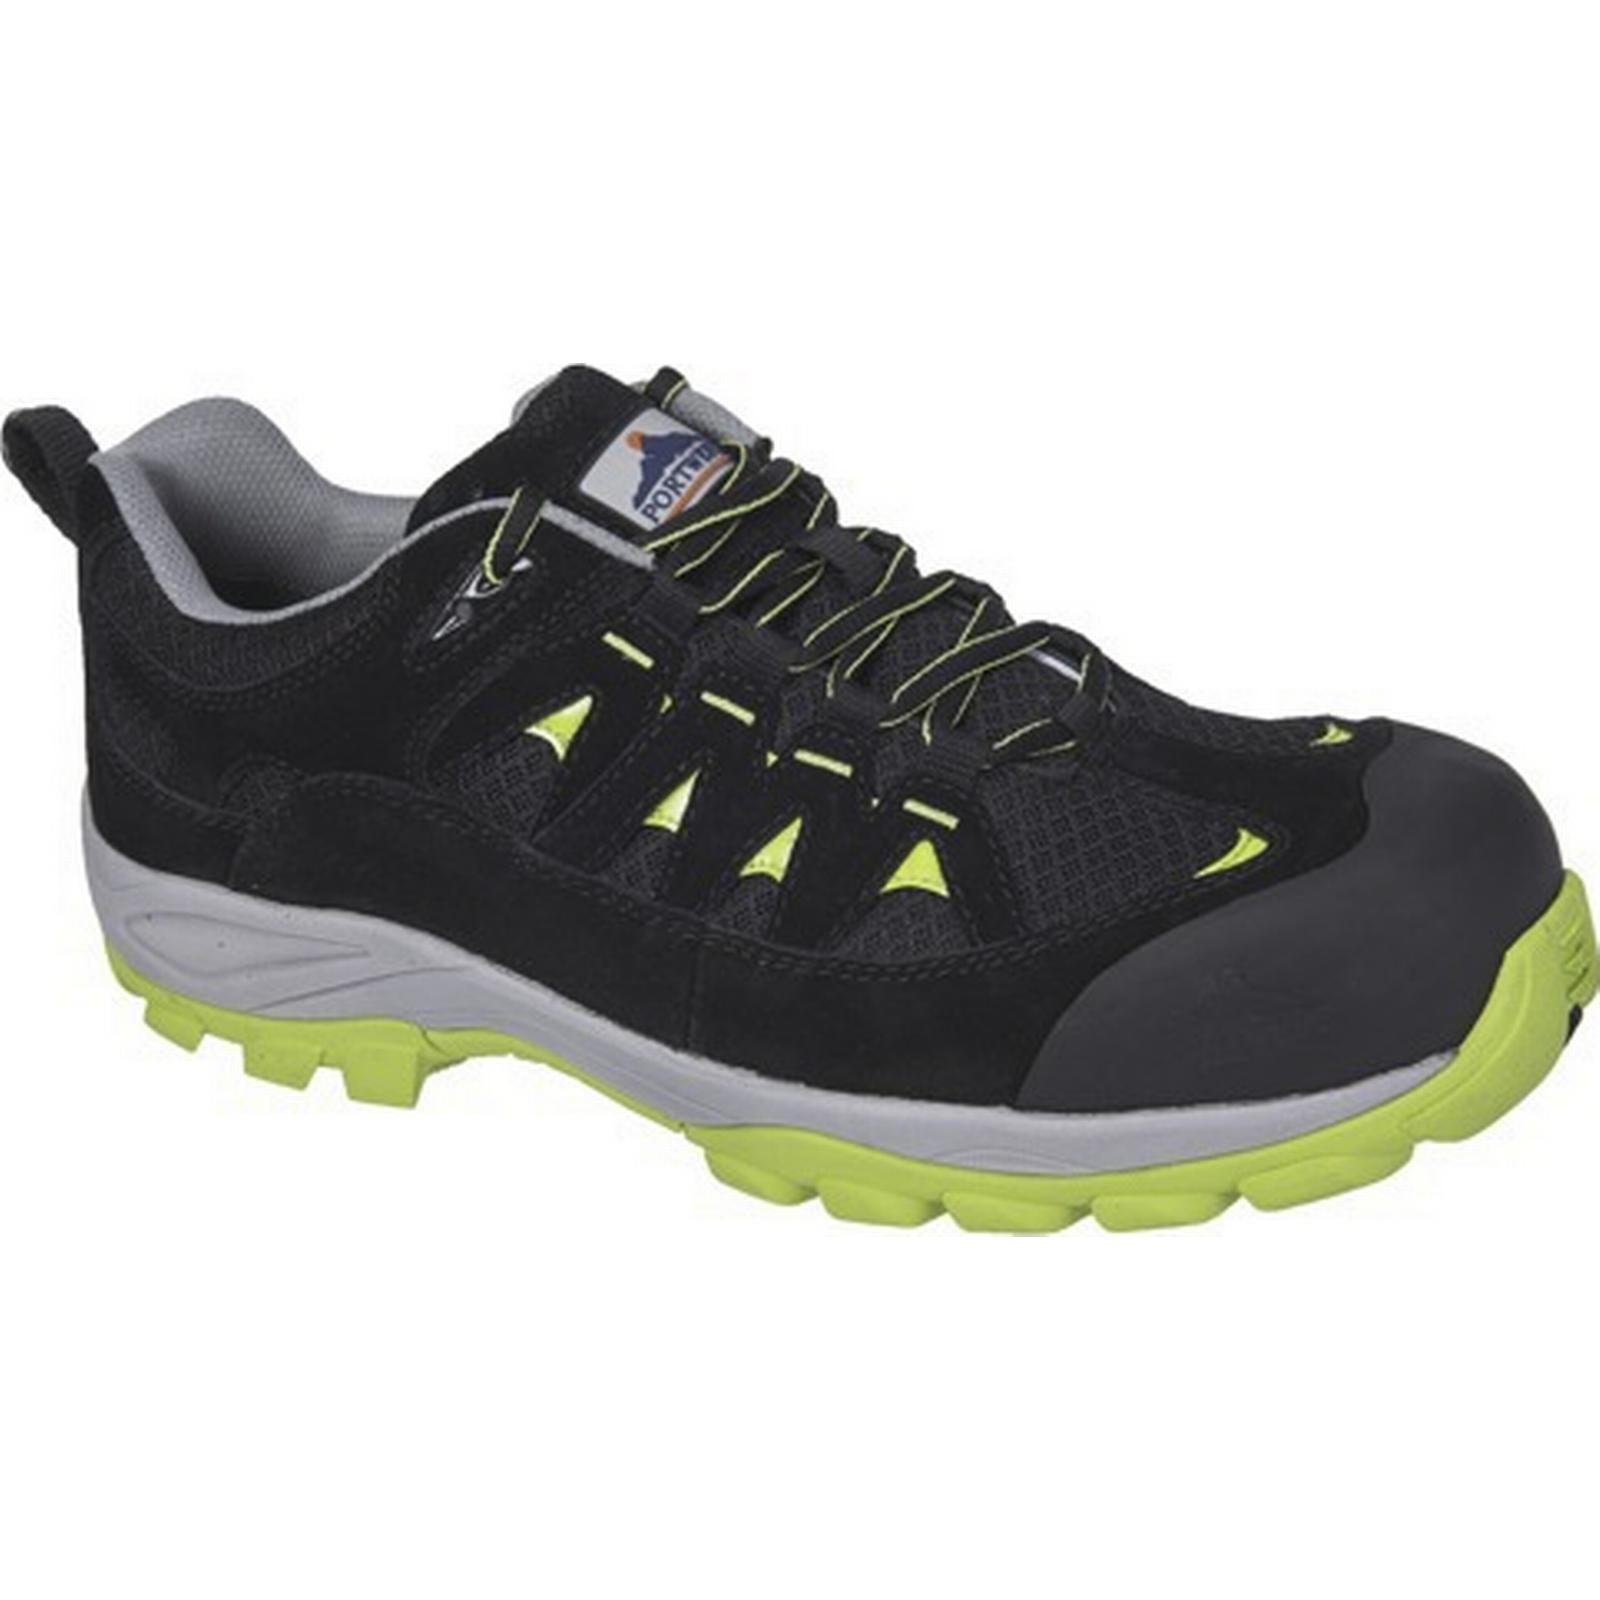 Compositelite Elbe Elbe Compositelite Low Cut Trainer S3 Green / 9 30e9a2